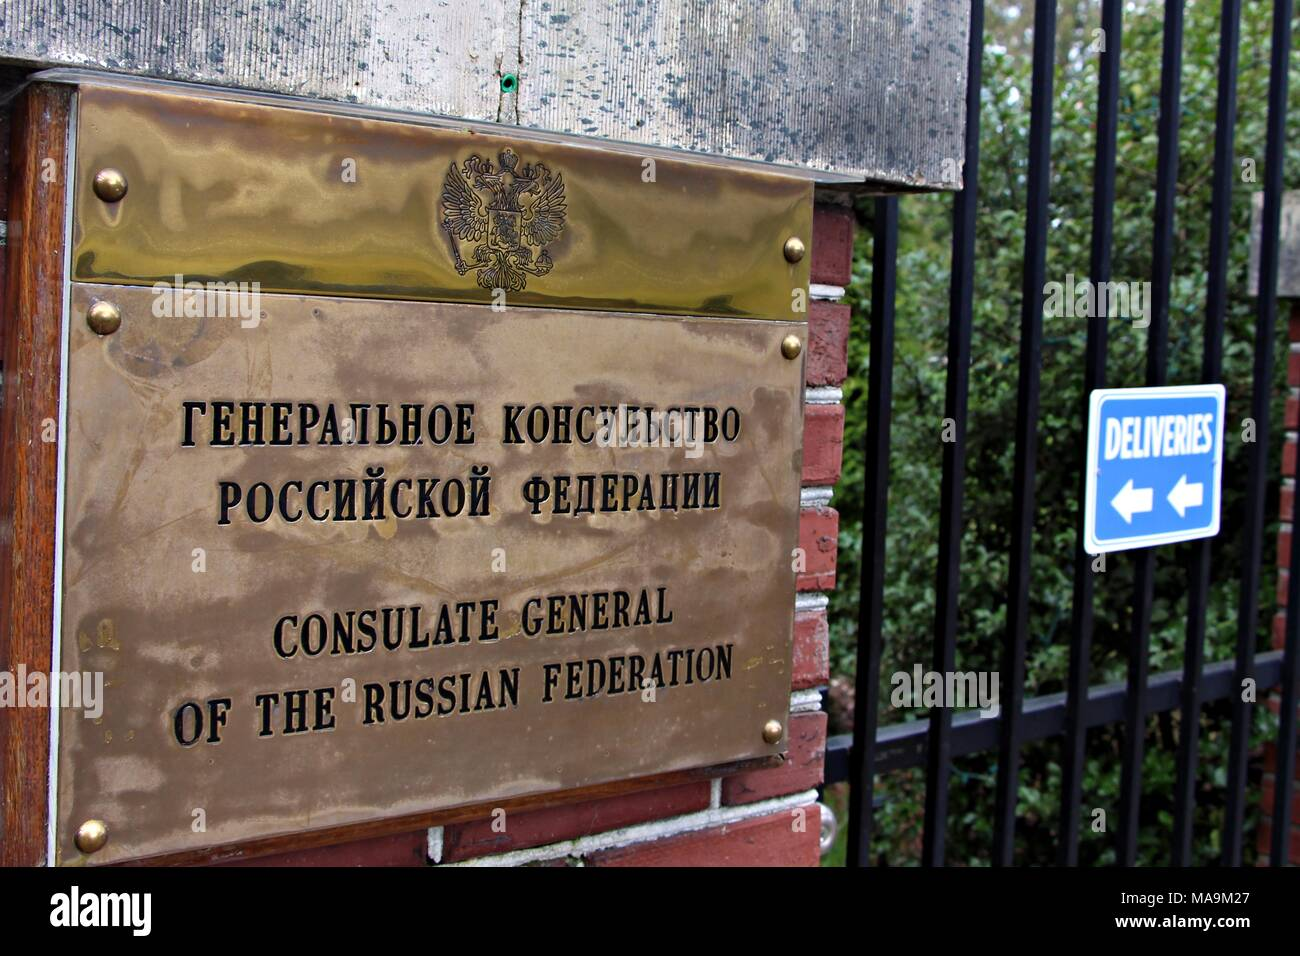 Seattle, USA. 30th Mar, 2018. Sign at the gate of the Russian consular residence in Seattle. Earlier this week, the Trump administration ordered the closure of the Russian Consulate-General in Seattle by April 2. According to Russian officials, the residence of the Consul General will remain occupied until April 24 when, it too, must close. Credit: Toby Scott/Alamy Live News. - Stock Image